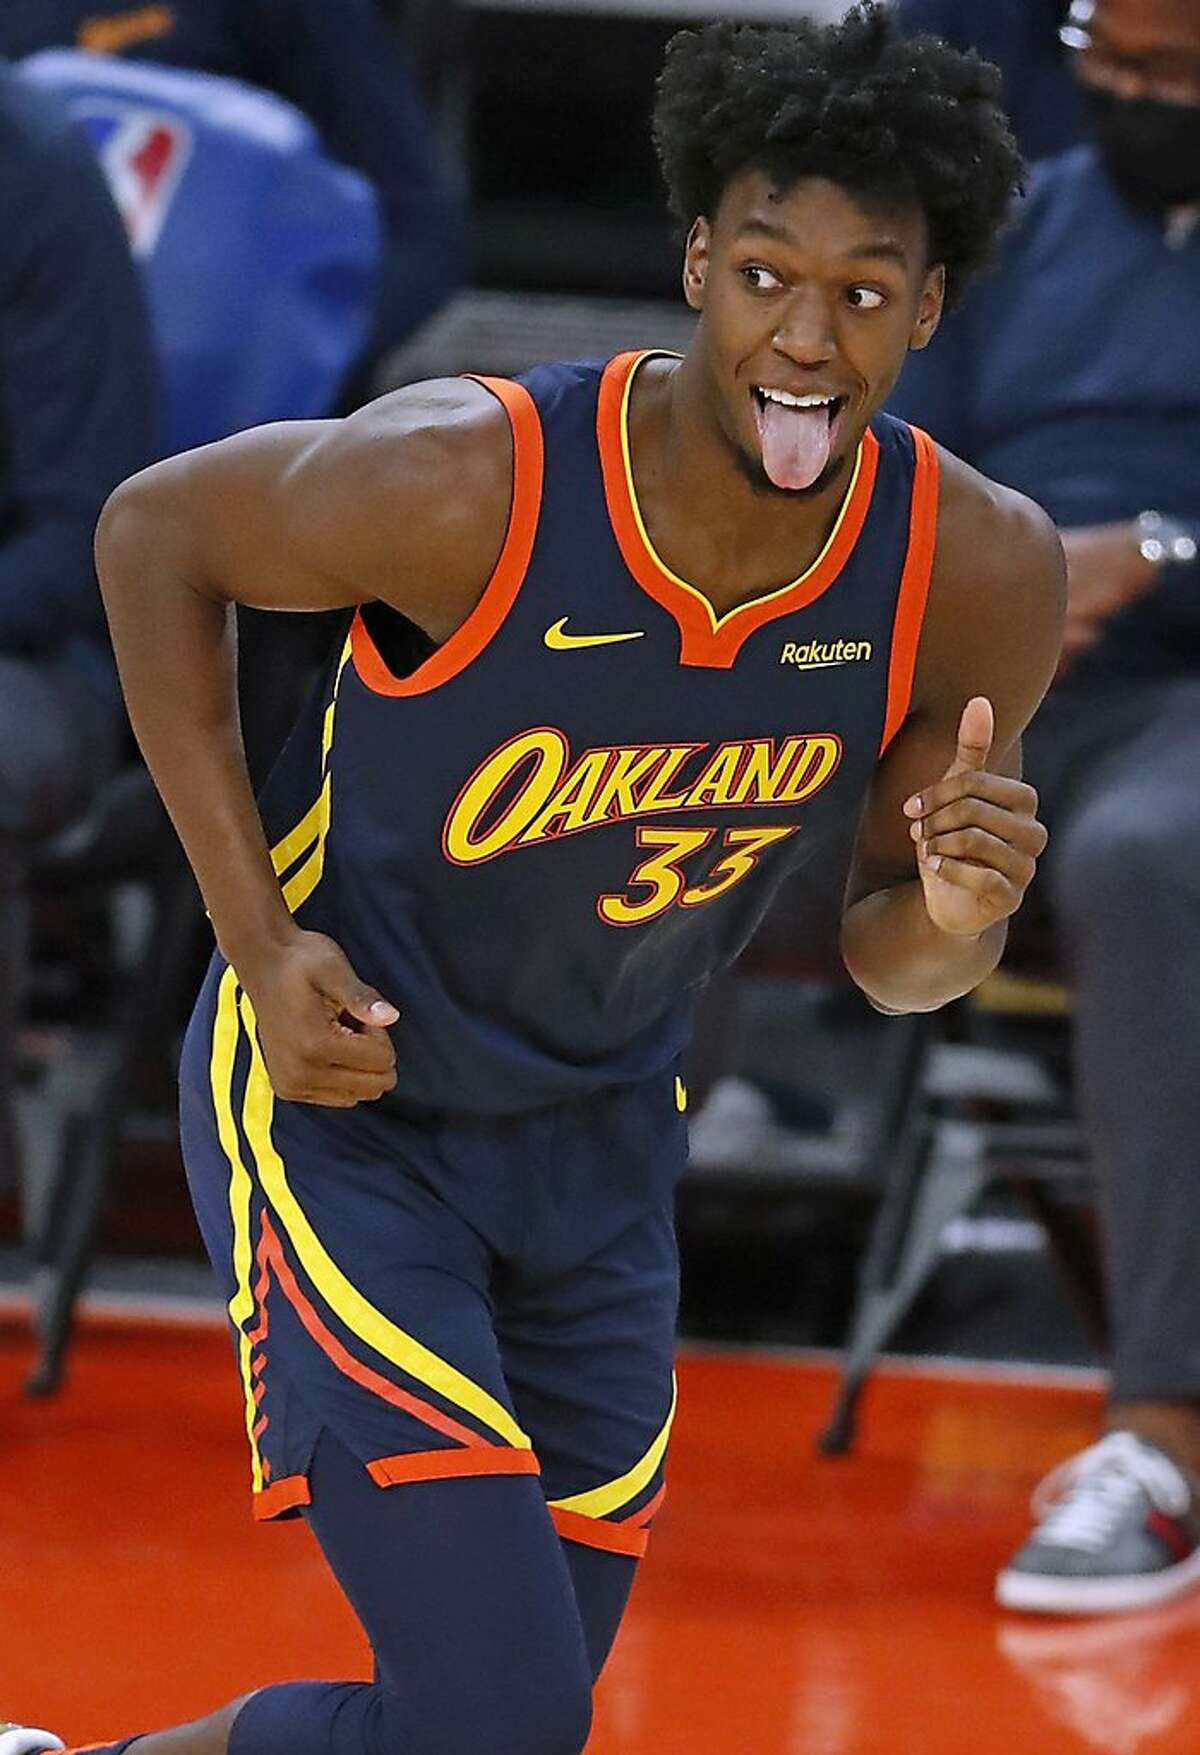 Golden State Warriors' James Wiseman reacts to his second 3-pointer against Minnesota Timberwolves in 1st quarter during NBA game at Chase Center in San Francisco, Calif., on Wednesday, January 27, 2021.